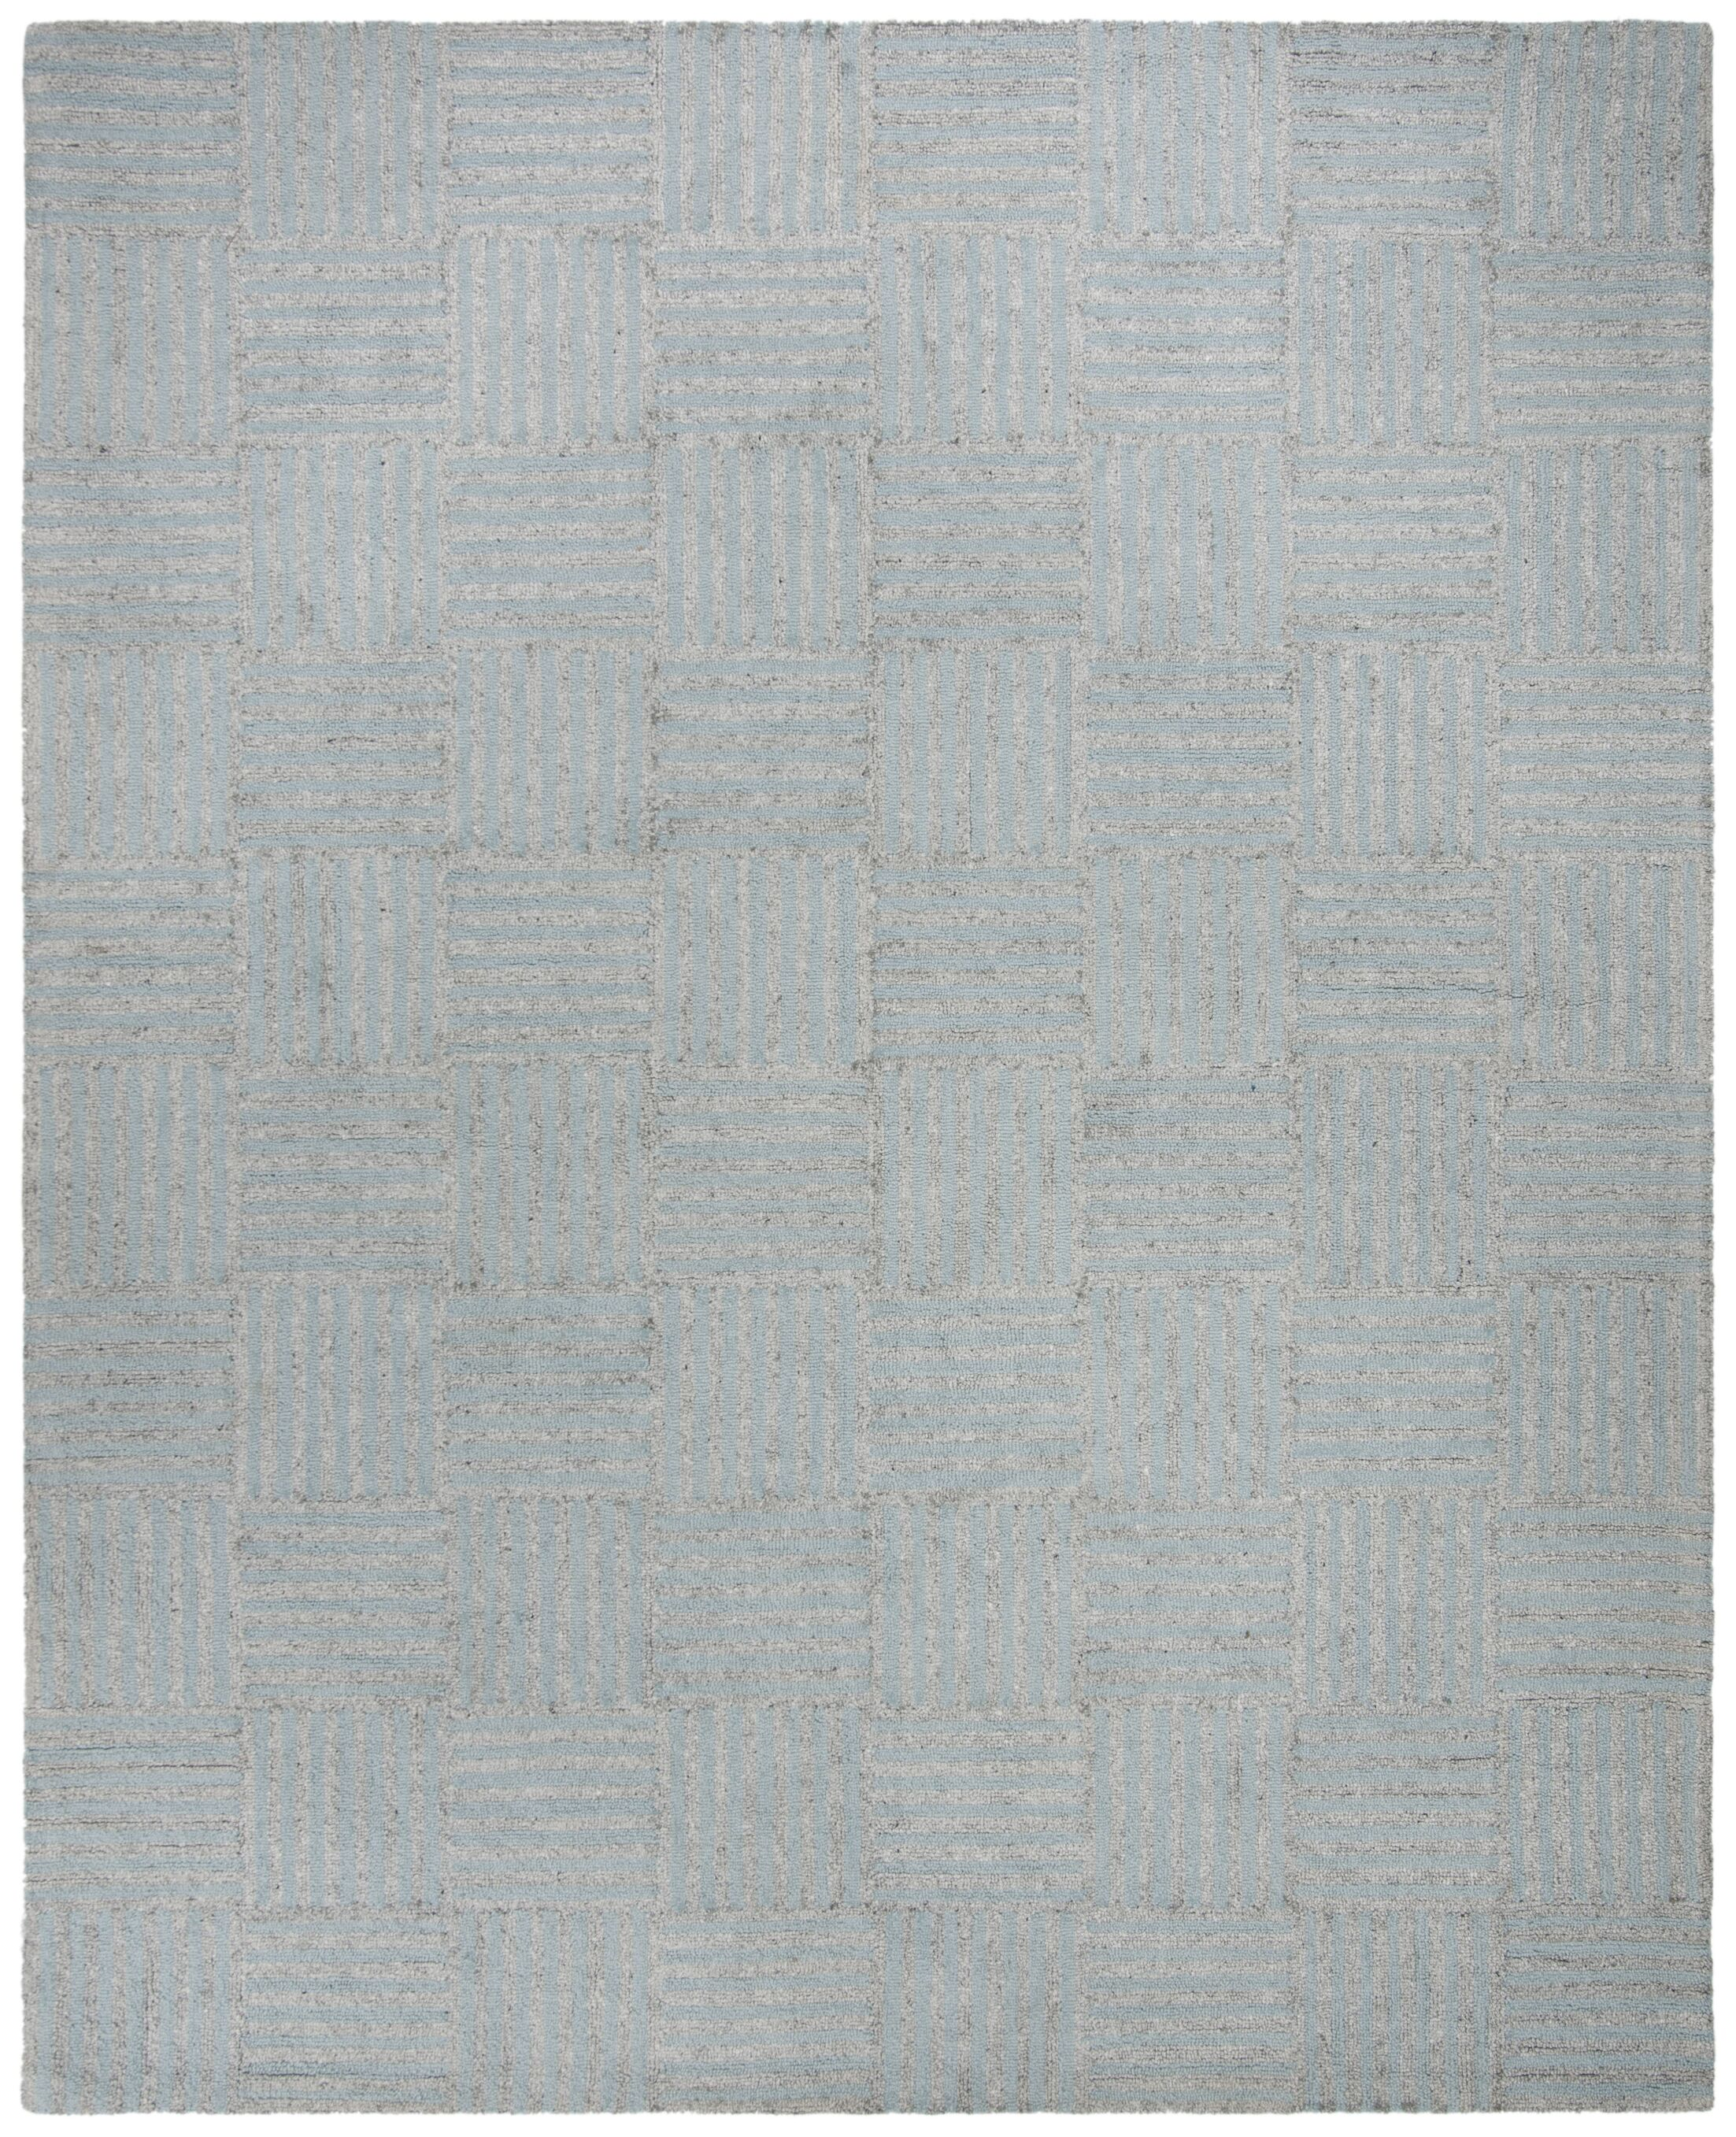 Brendan Hand-Tufted Blue/Gray Area Rug Rug Size: Rectangle 5' x 8'